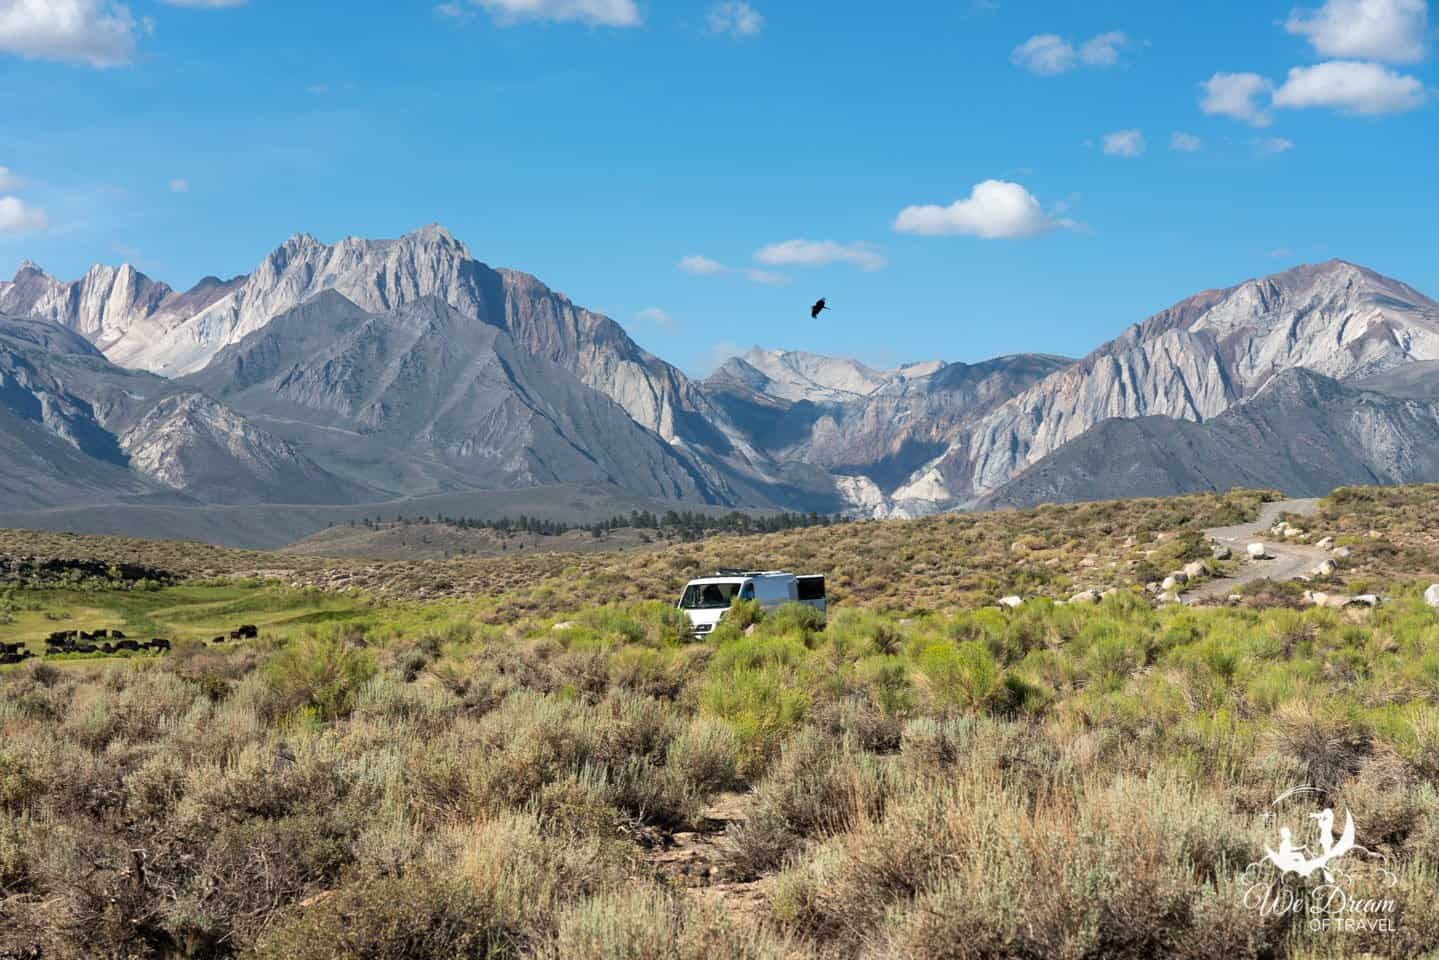 There are ample places with incredible views for dispersed camping near the Mammoth Lakes hot springs.